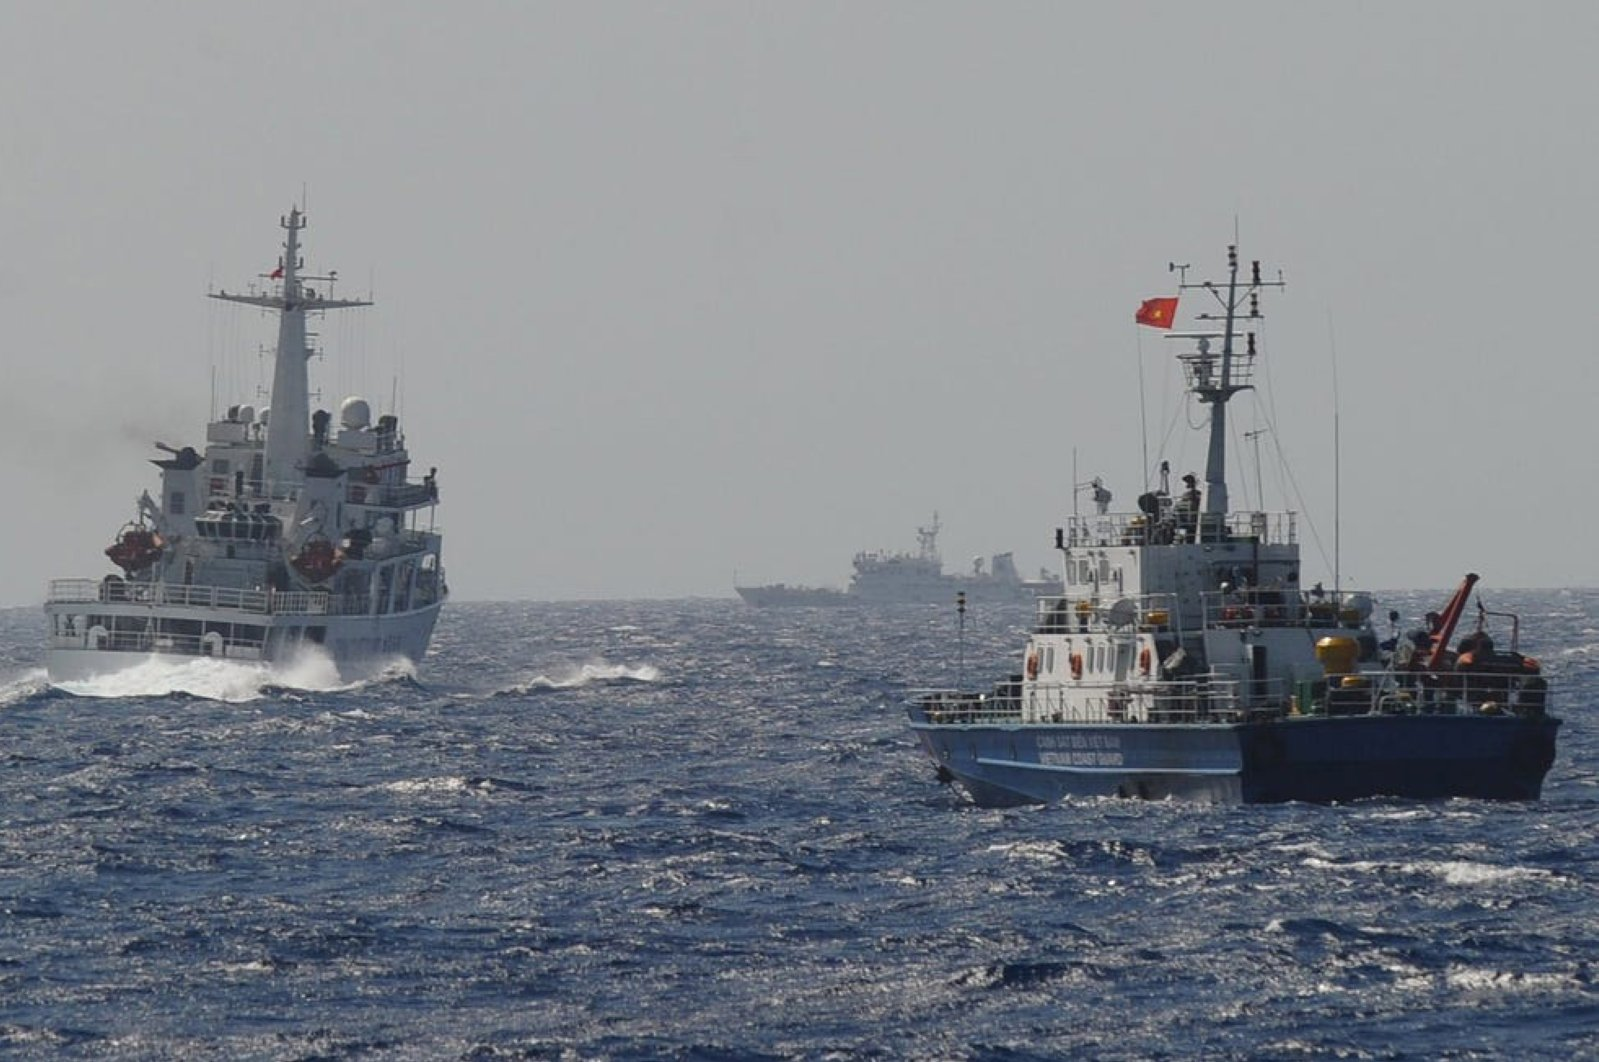 This picture taken on May 14, 2014 shows a Chinese coast guard vessel (C) followed by a Vietnamese coast guard ship near the area of China's oil drilling rig in disputed waters in the South China Sea. (AFP Photo)